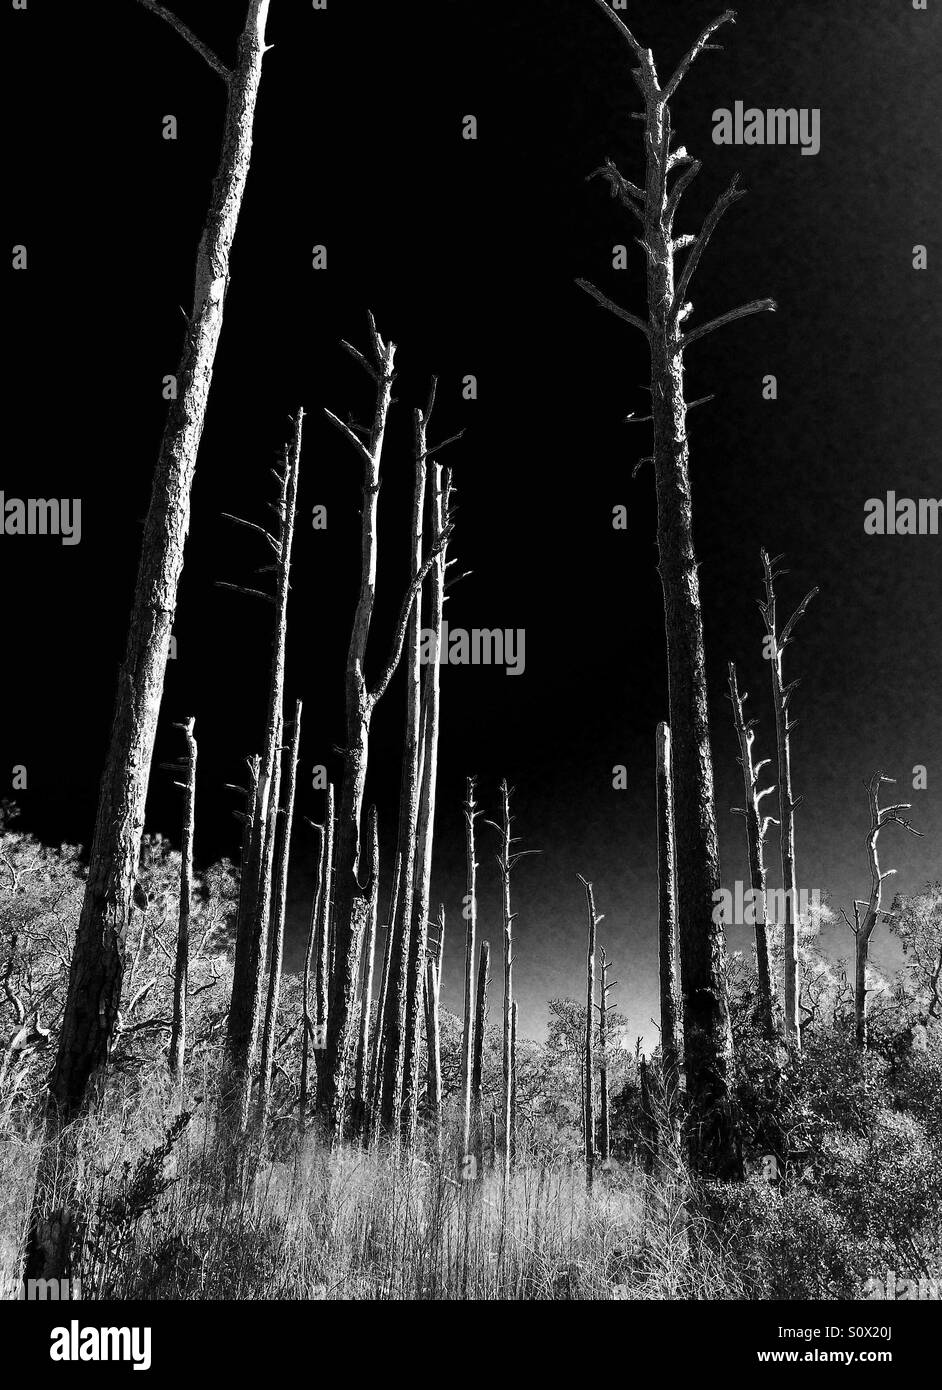 Branchless trees of a burned-out pine forest in Northeast Florida in black and white, March 2016 - Stock Image